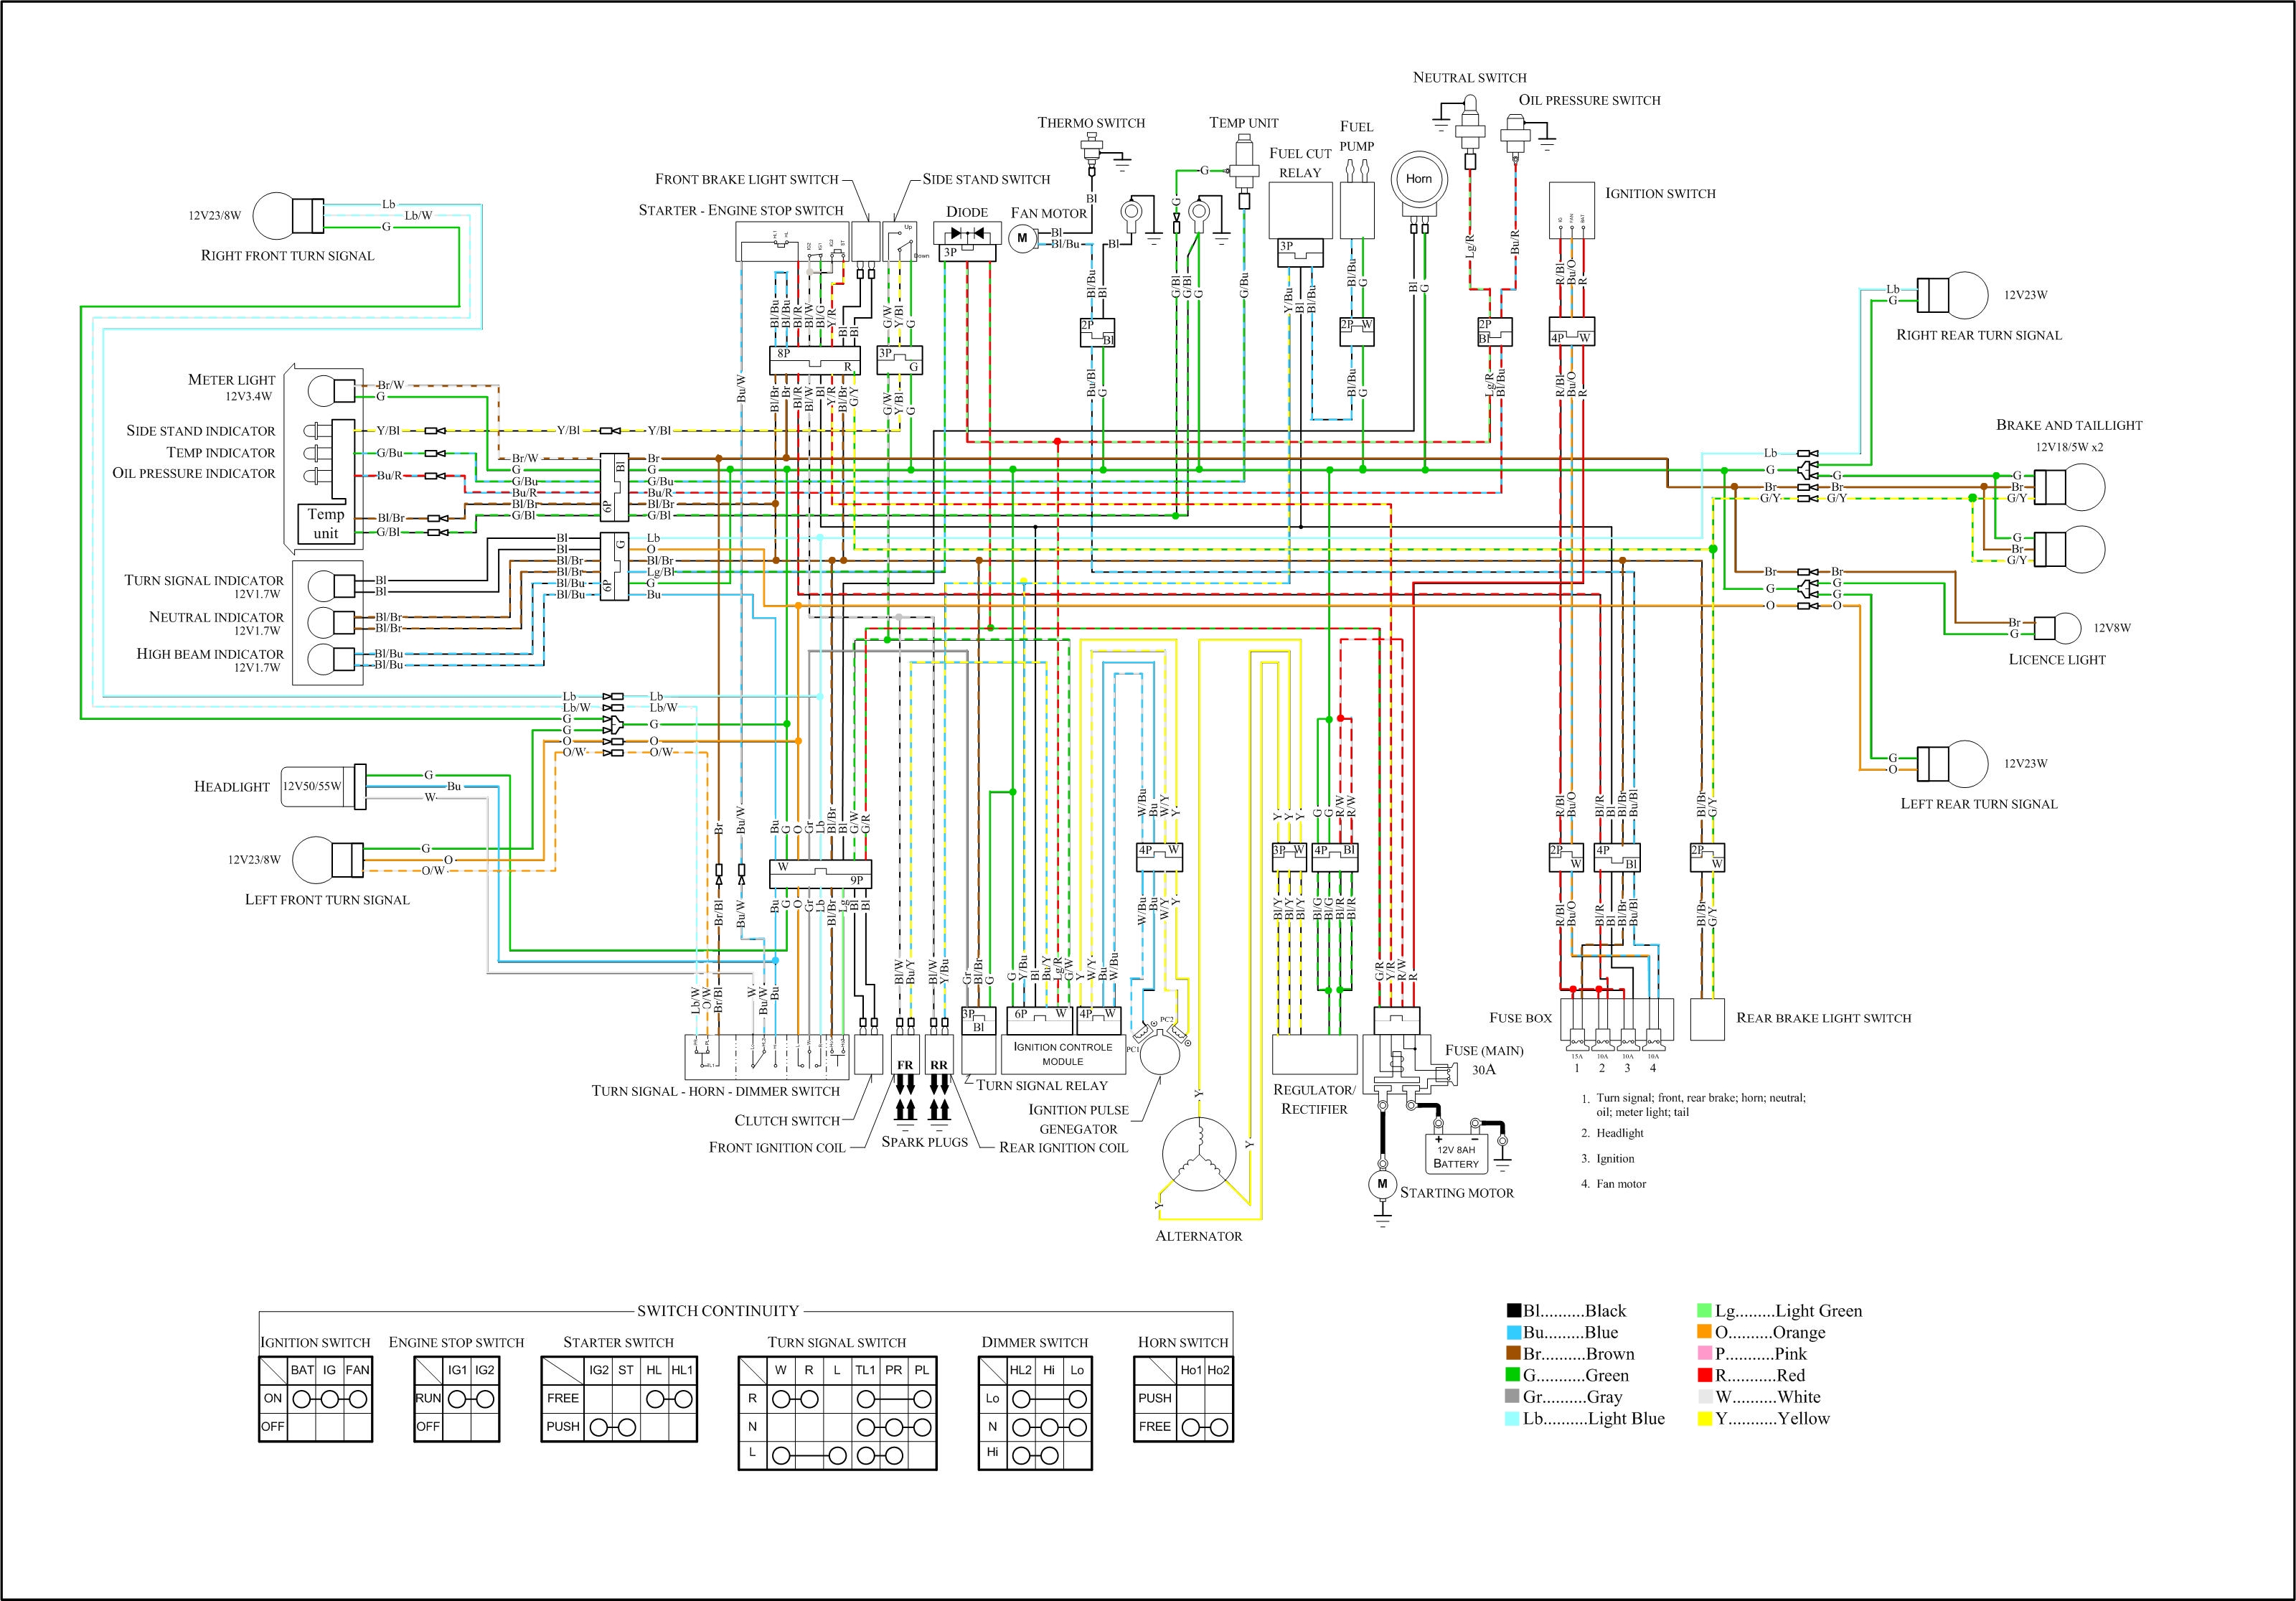 VT600wiring motorcycle wiring diagrams motorcycle wiring diagram at nearapp.co